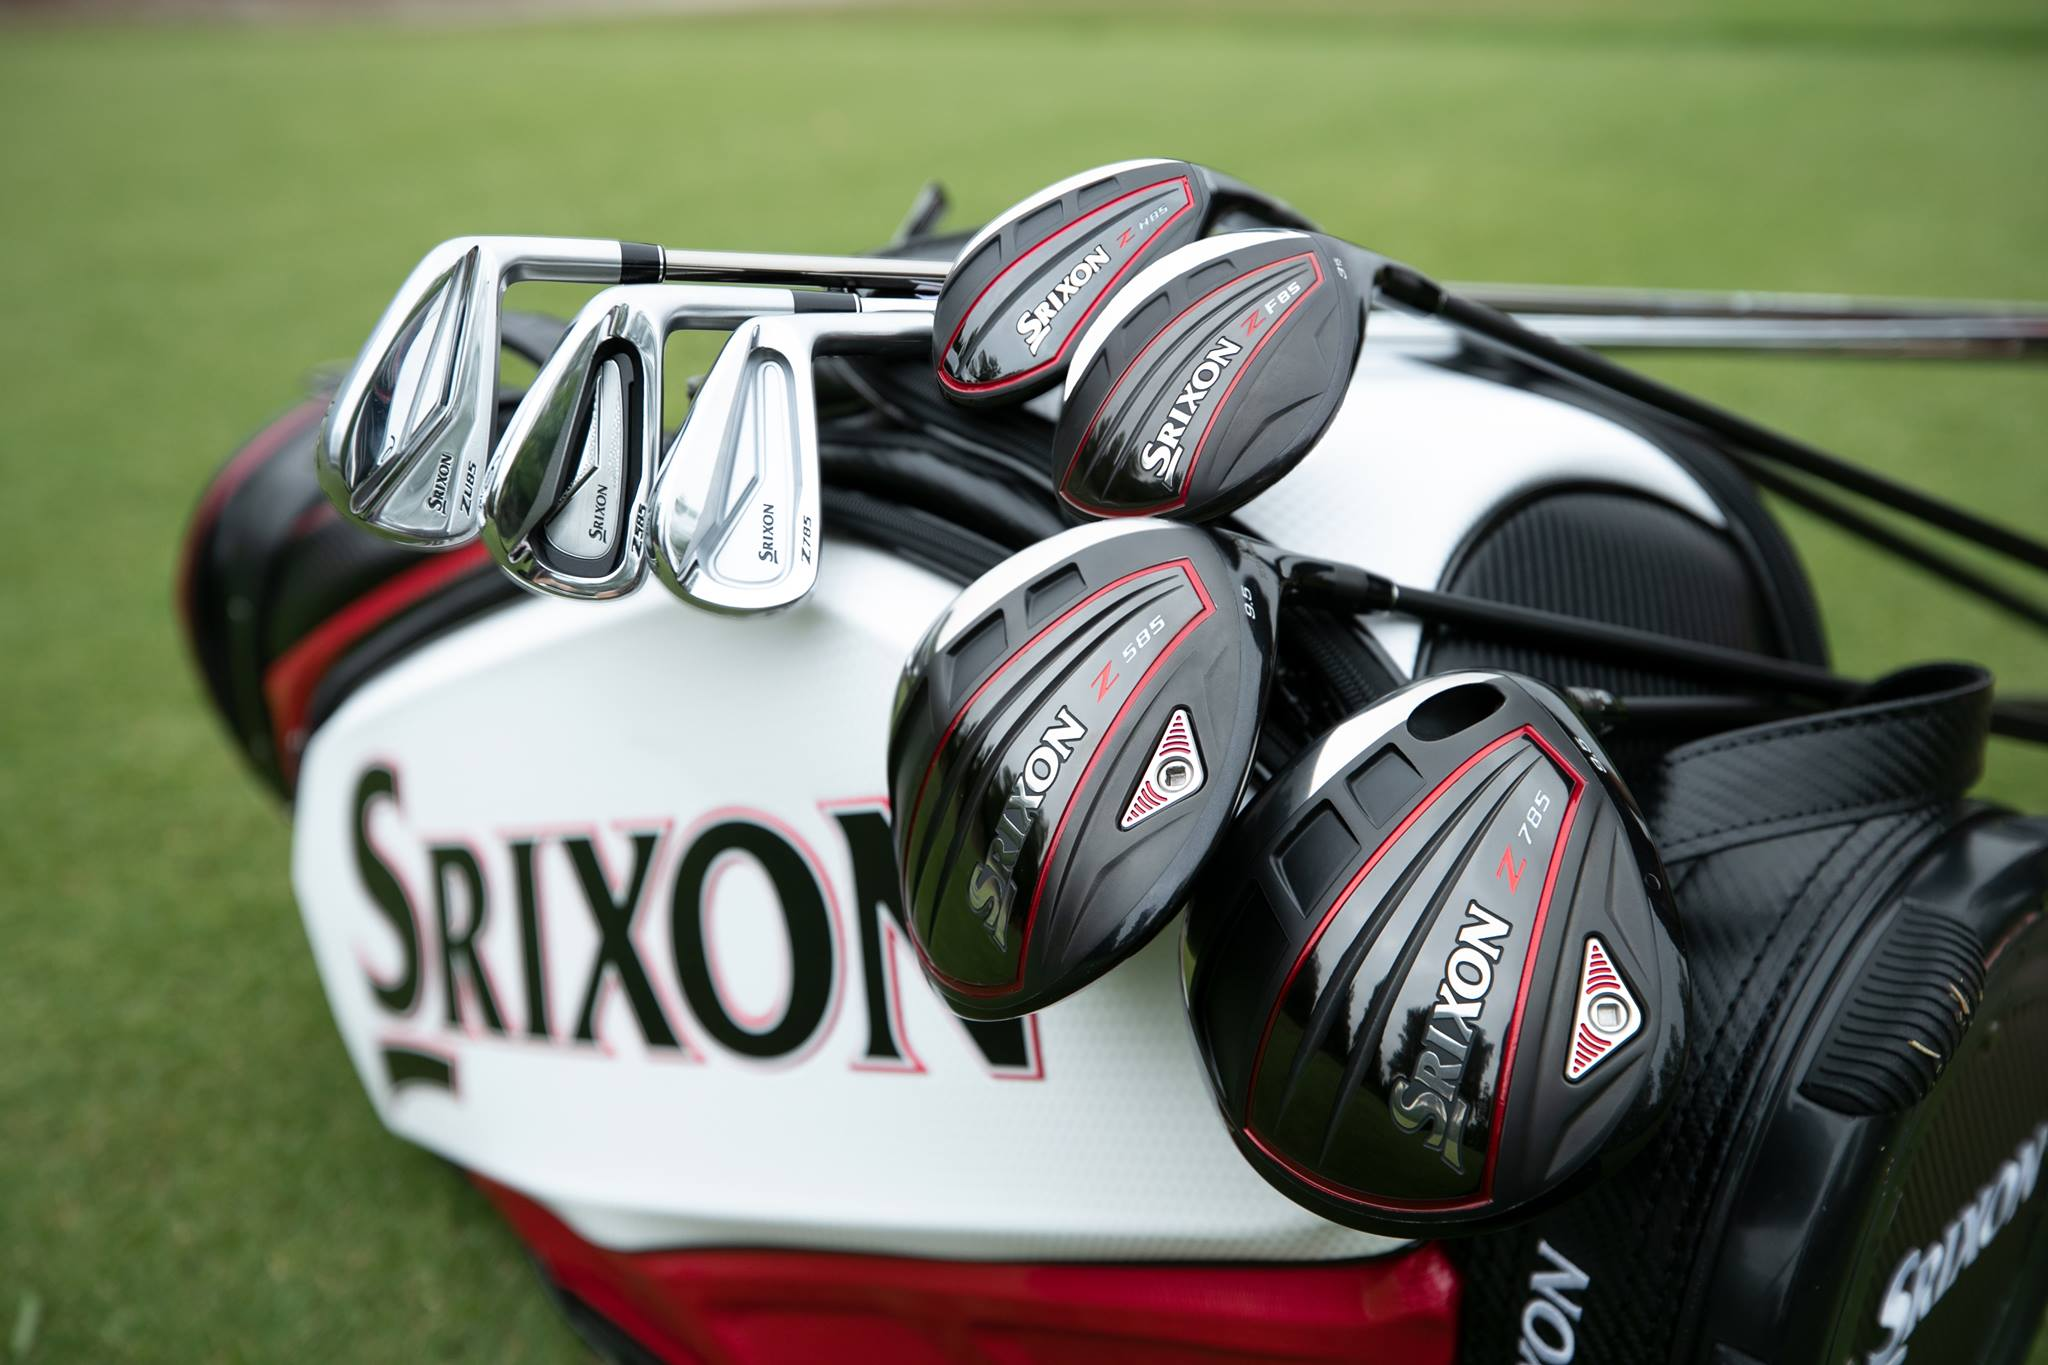 Srixon Golf Ball Fitting at Cog Hill Golf and Country Club - May